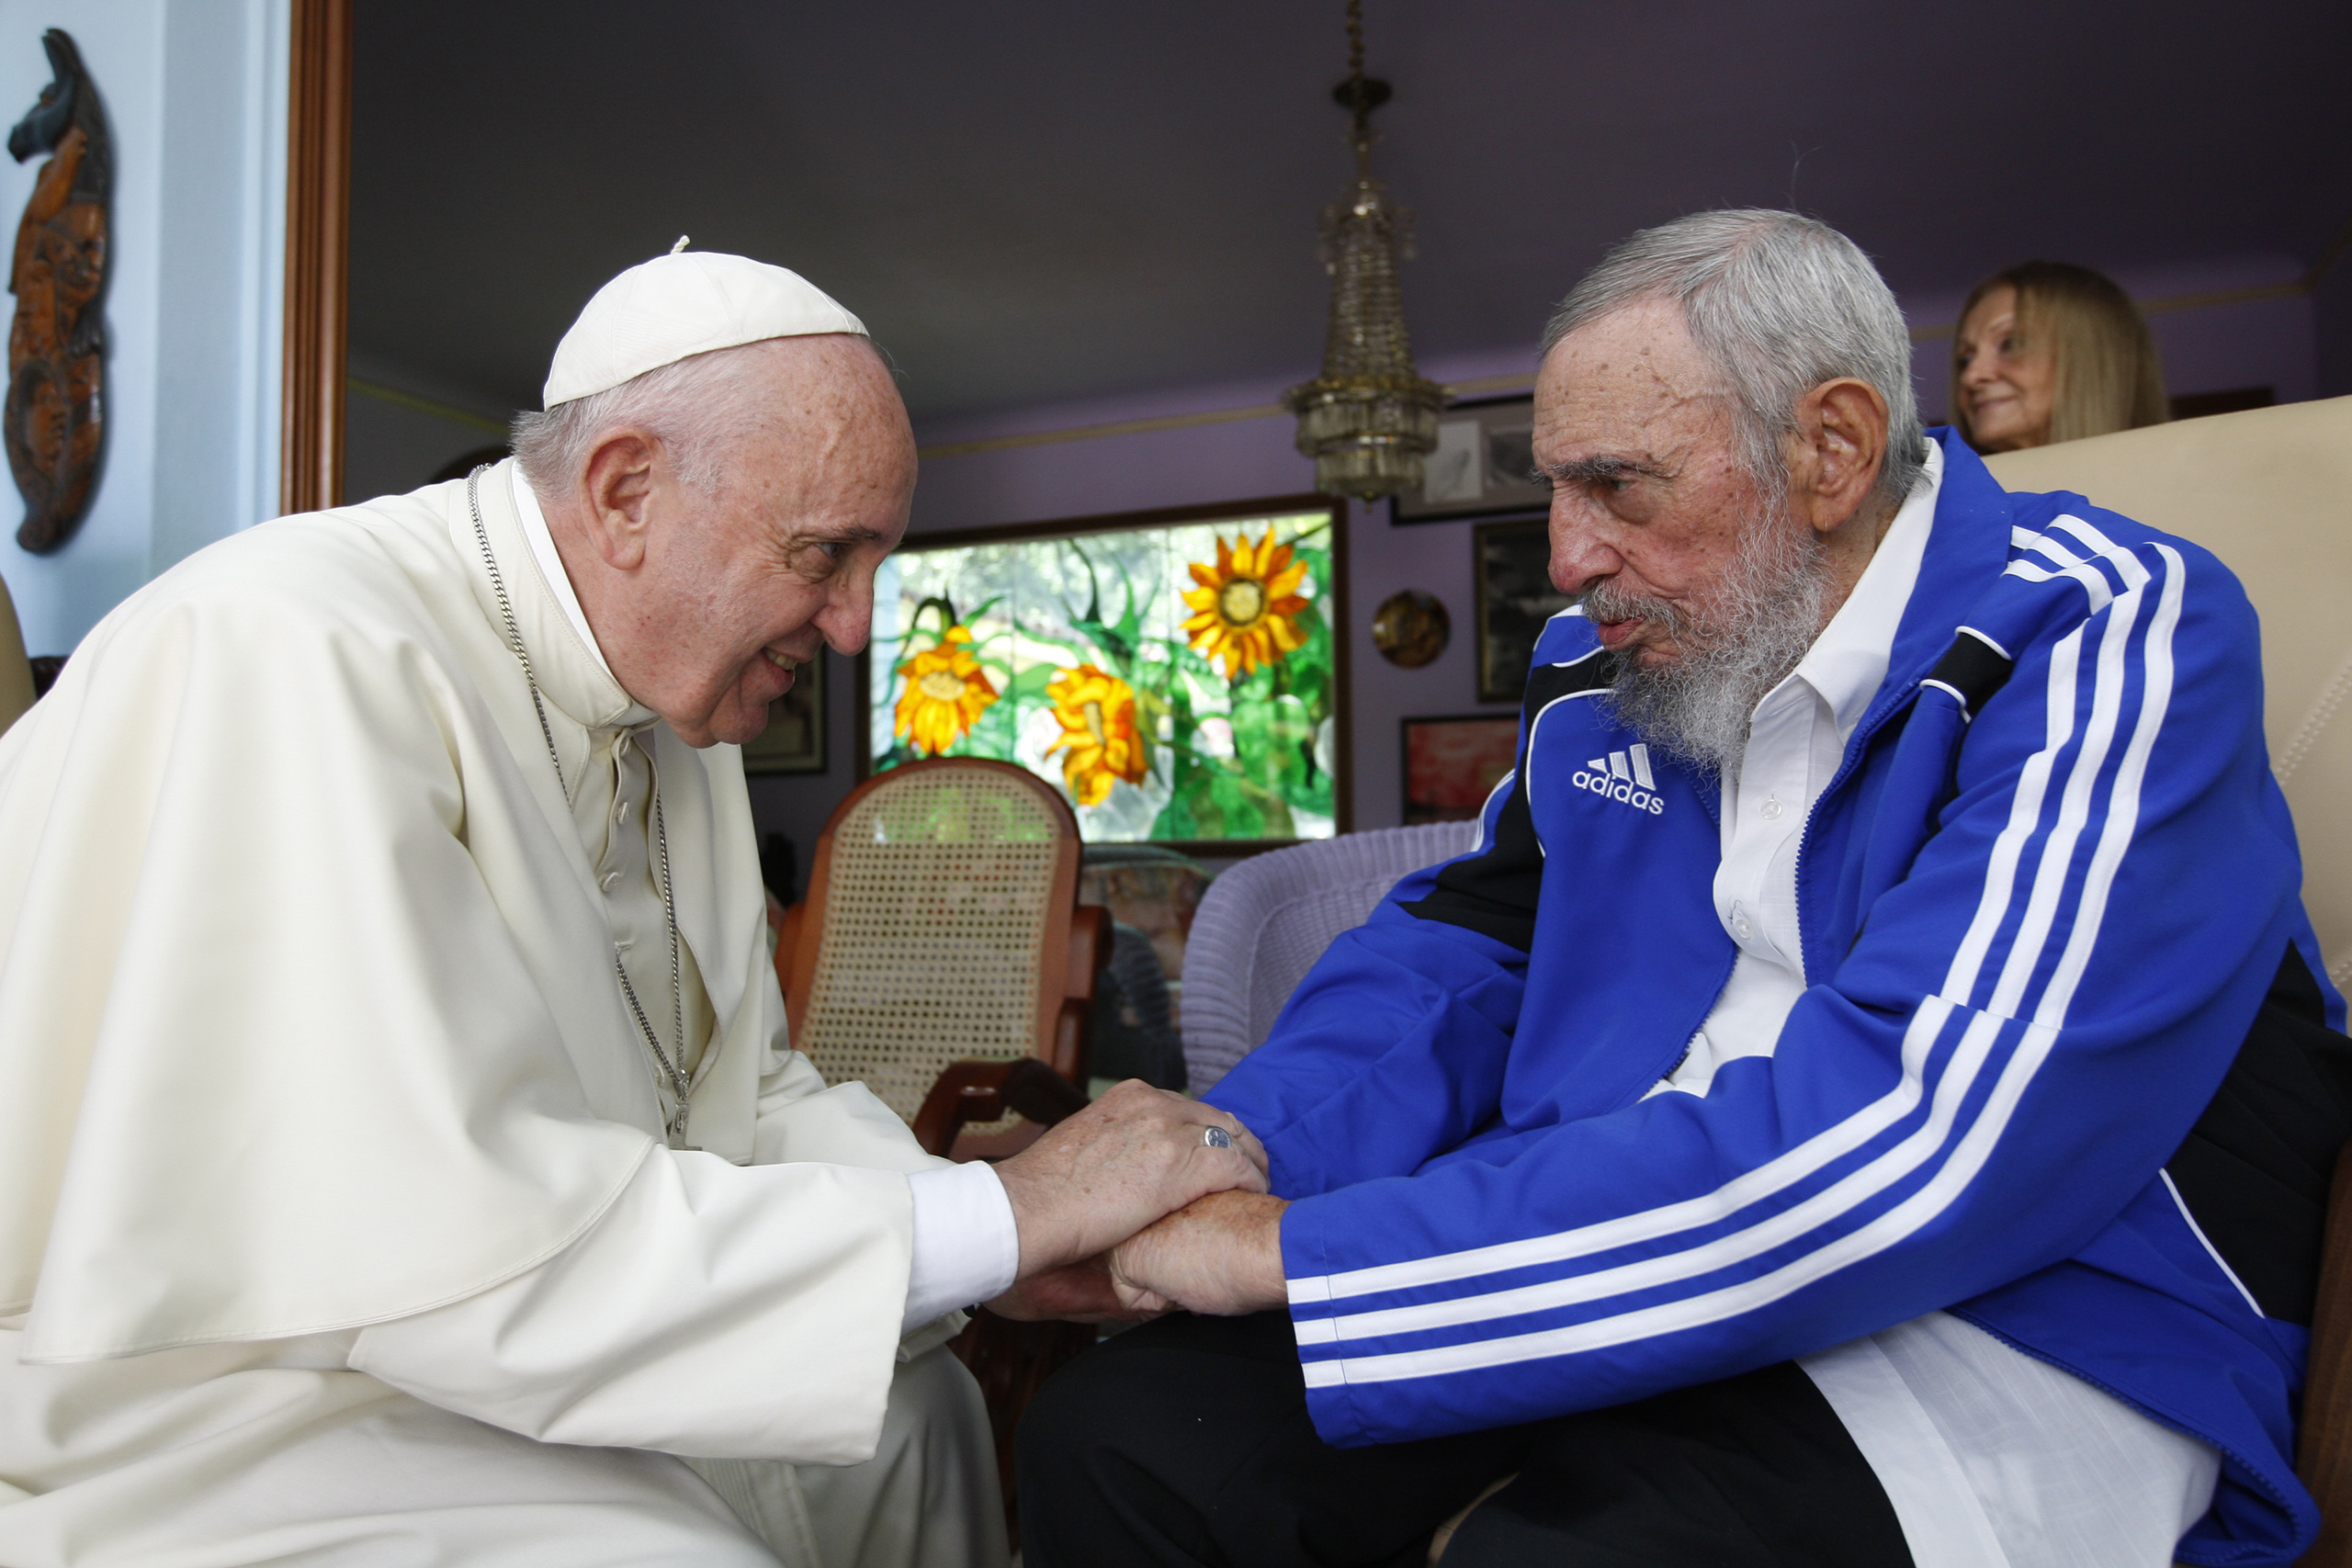 Pope Francis and Fidel Castro embrace hands at a 40-minute meeting inside Castro's residence during the pontiff's trip to Havana on Sept. 20, 2015.